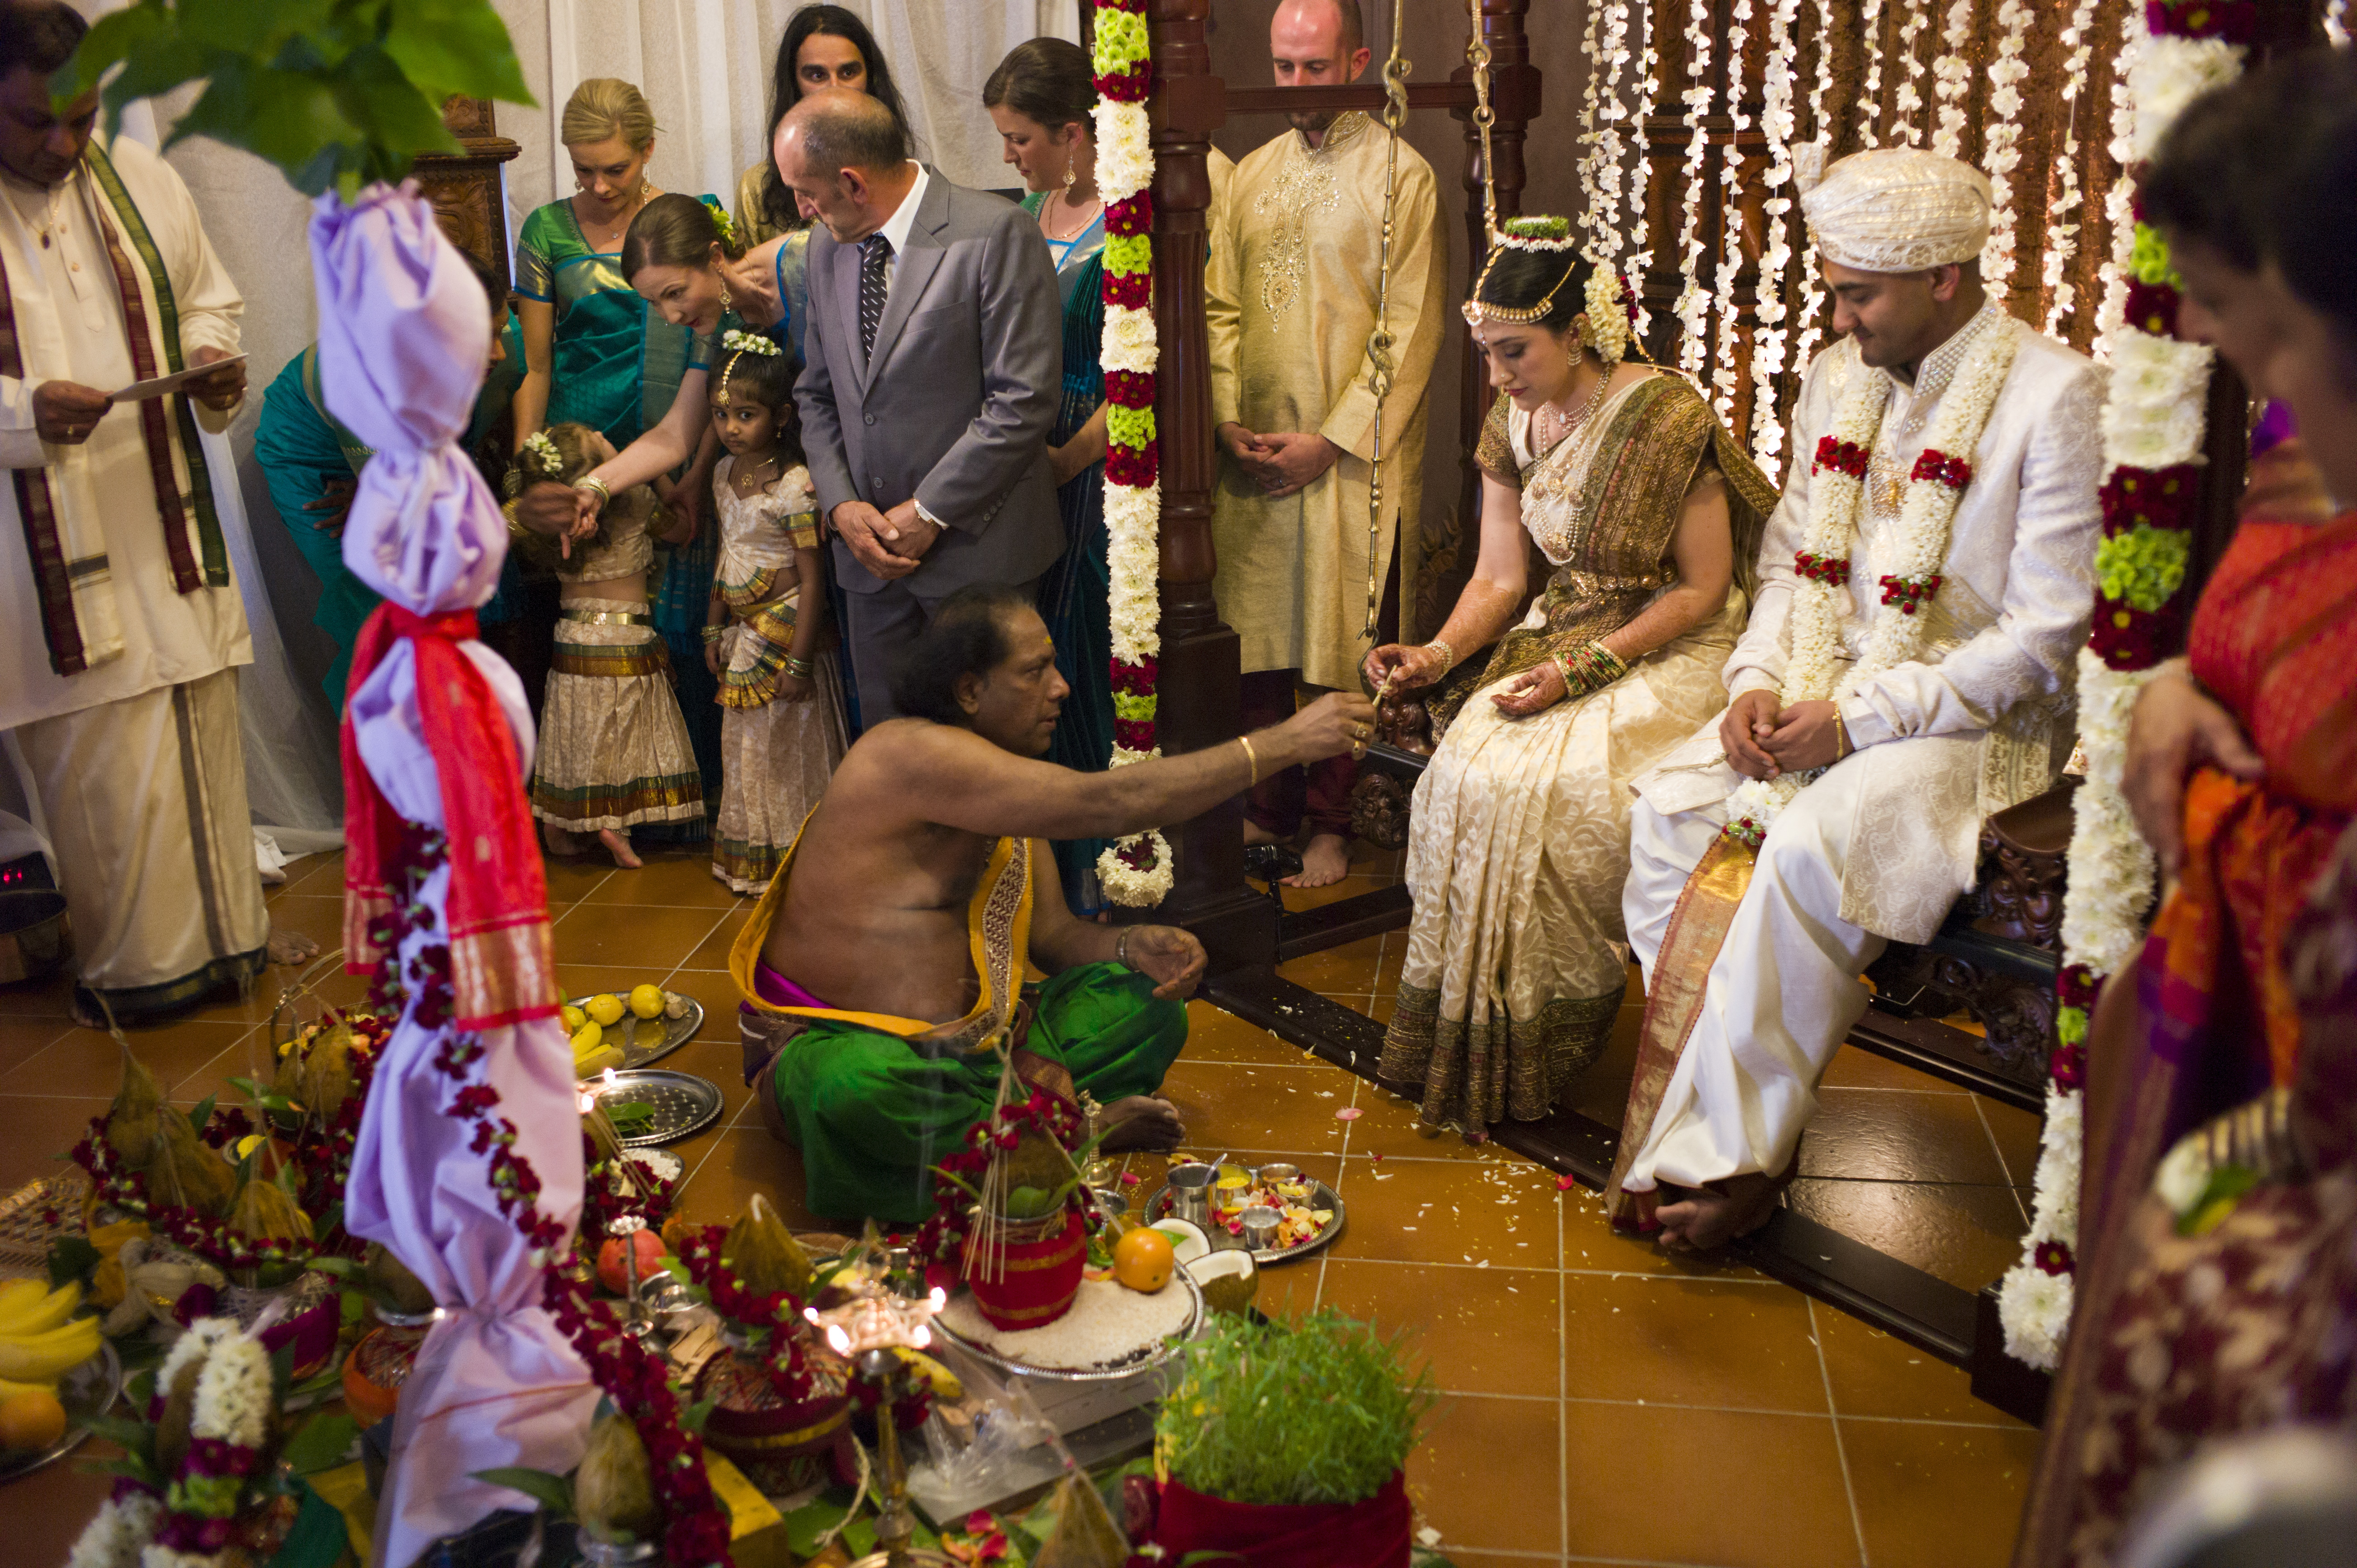 Newly weds sit in festive surrounds from Counting and Cracking